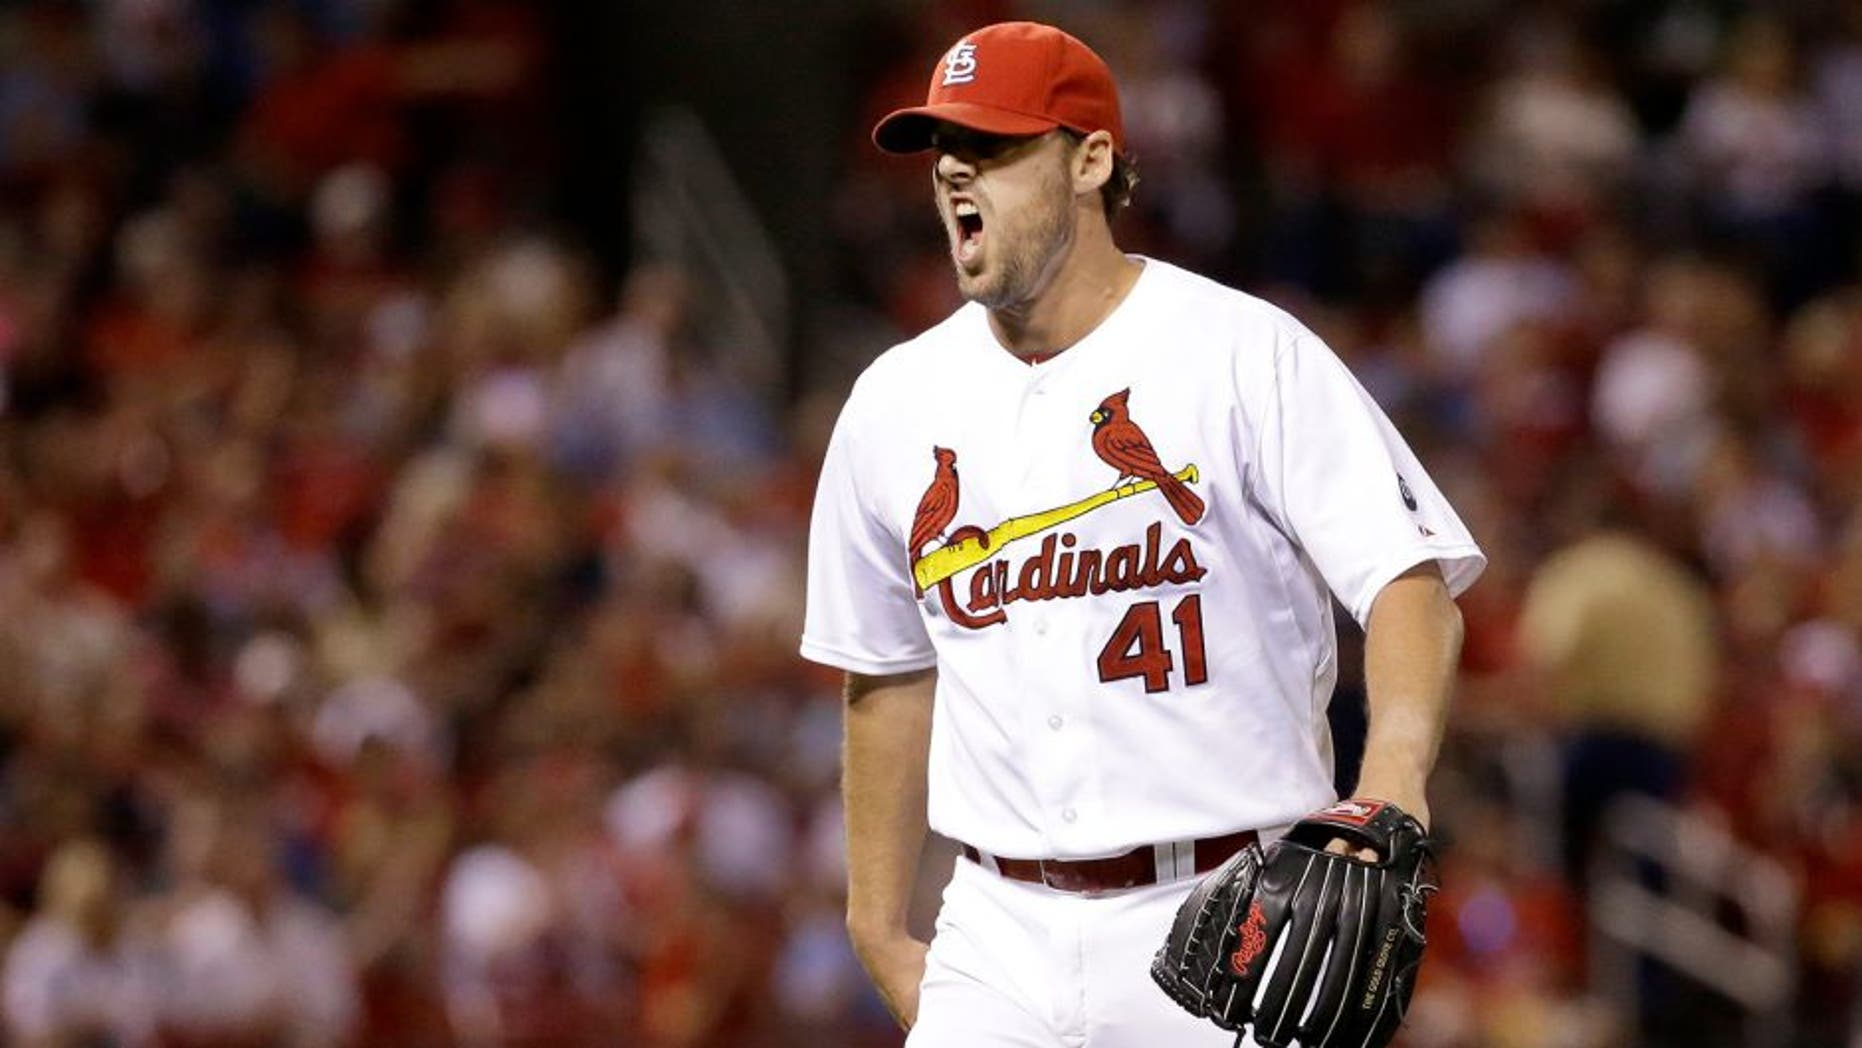 St. Louis Cardinals starting pitcher John Lackey yells as he walks off the field after getting Cincinnati Reds' Tucker Barnhart to line out to end the top of the seventh inning of a baseball game on Tuesday, Sept. 22, 2015, in St. Louis. (AP Photo/Jeff Roberson)